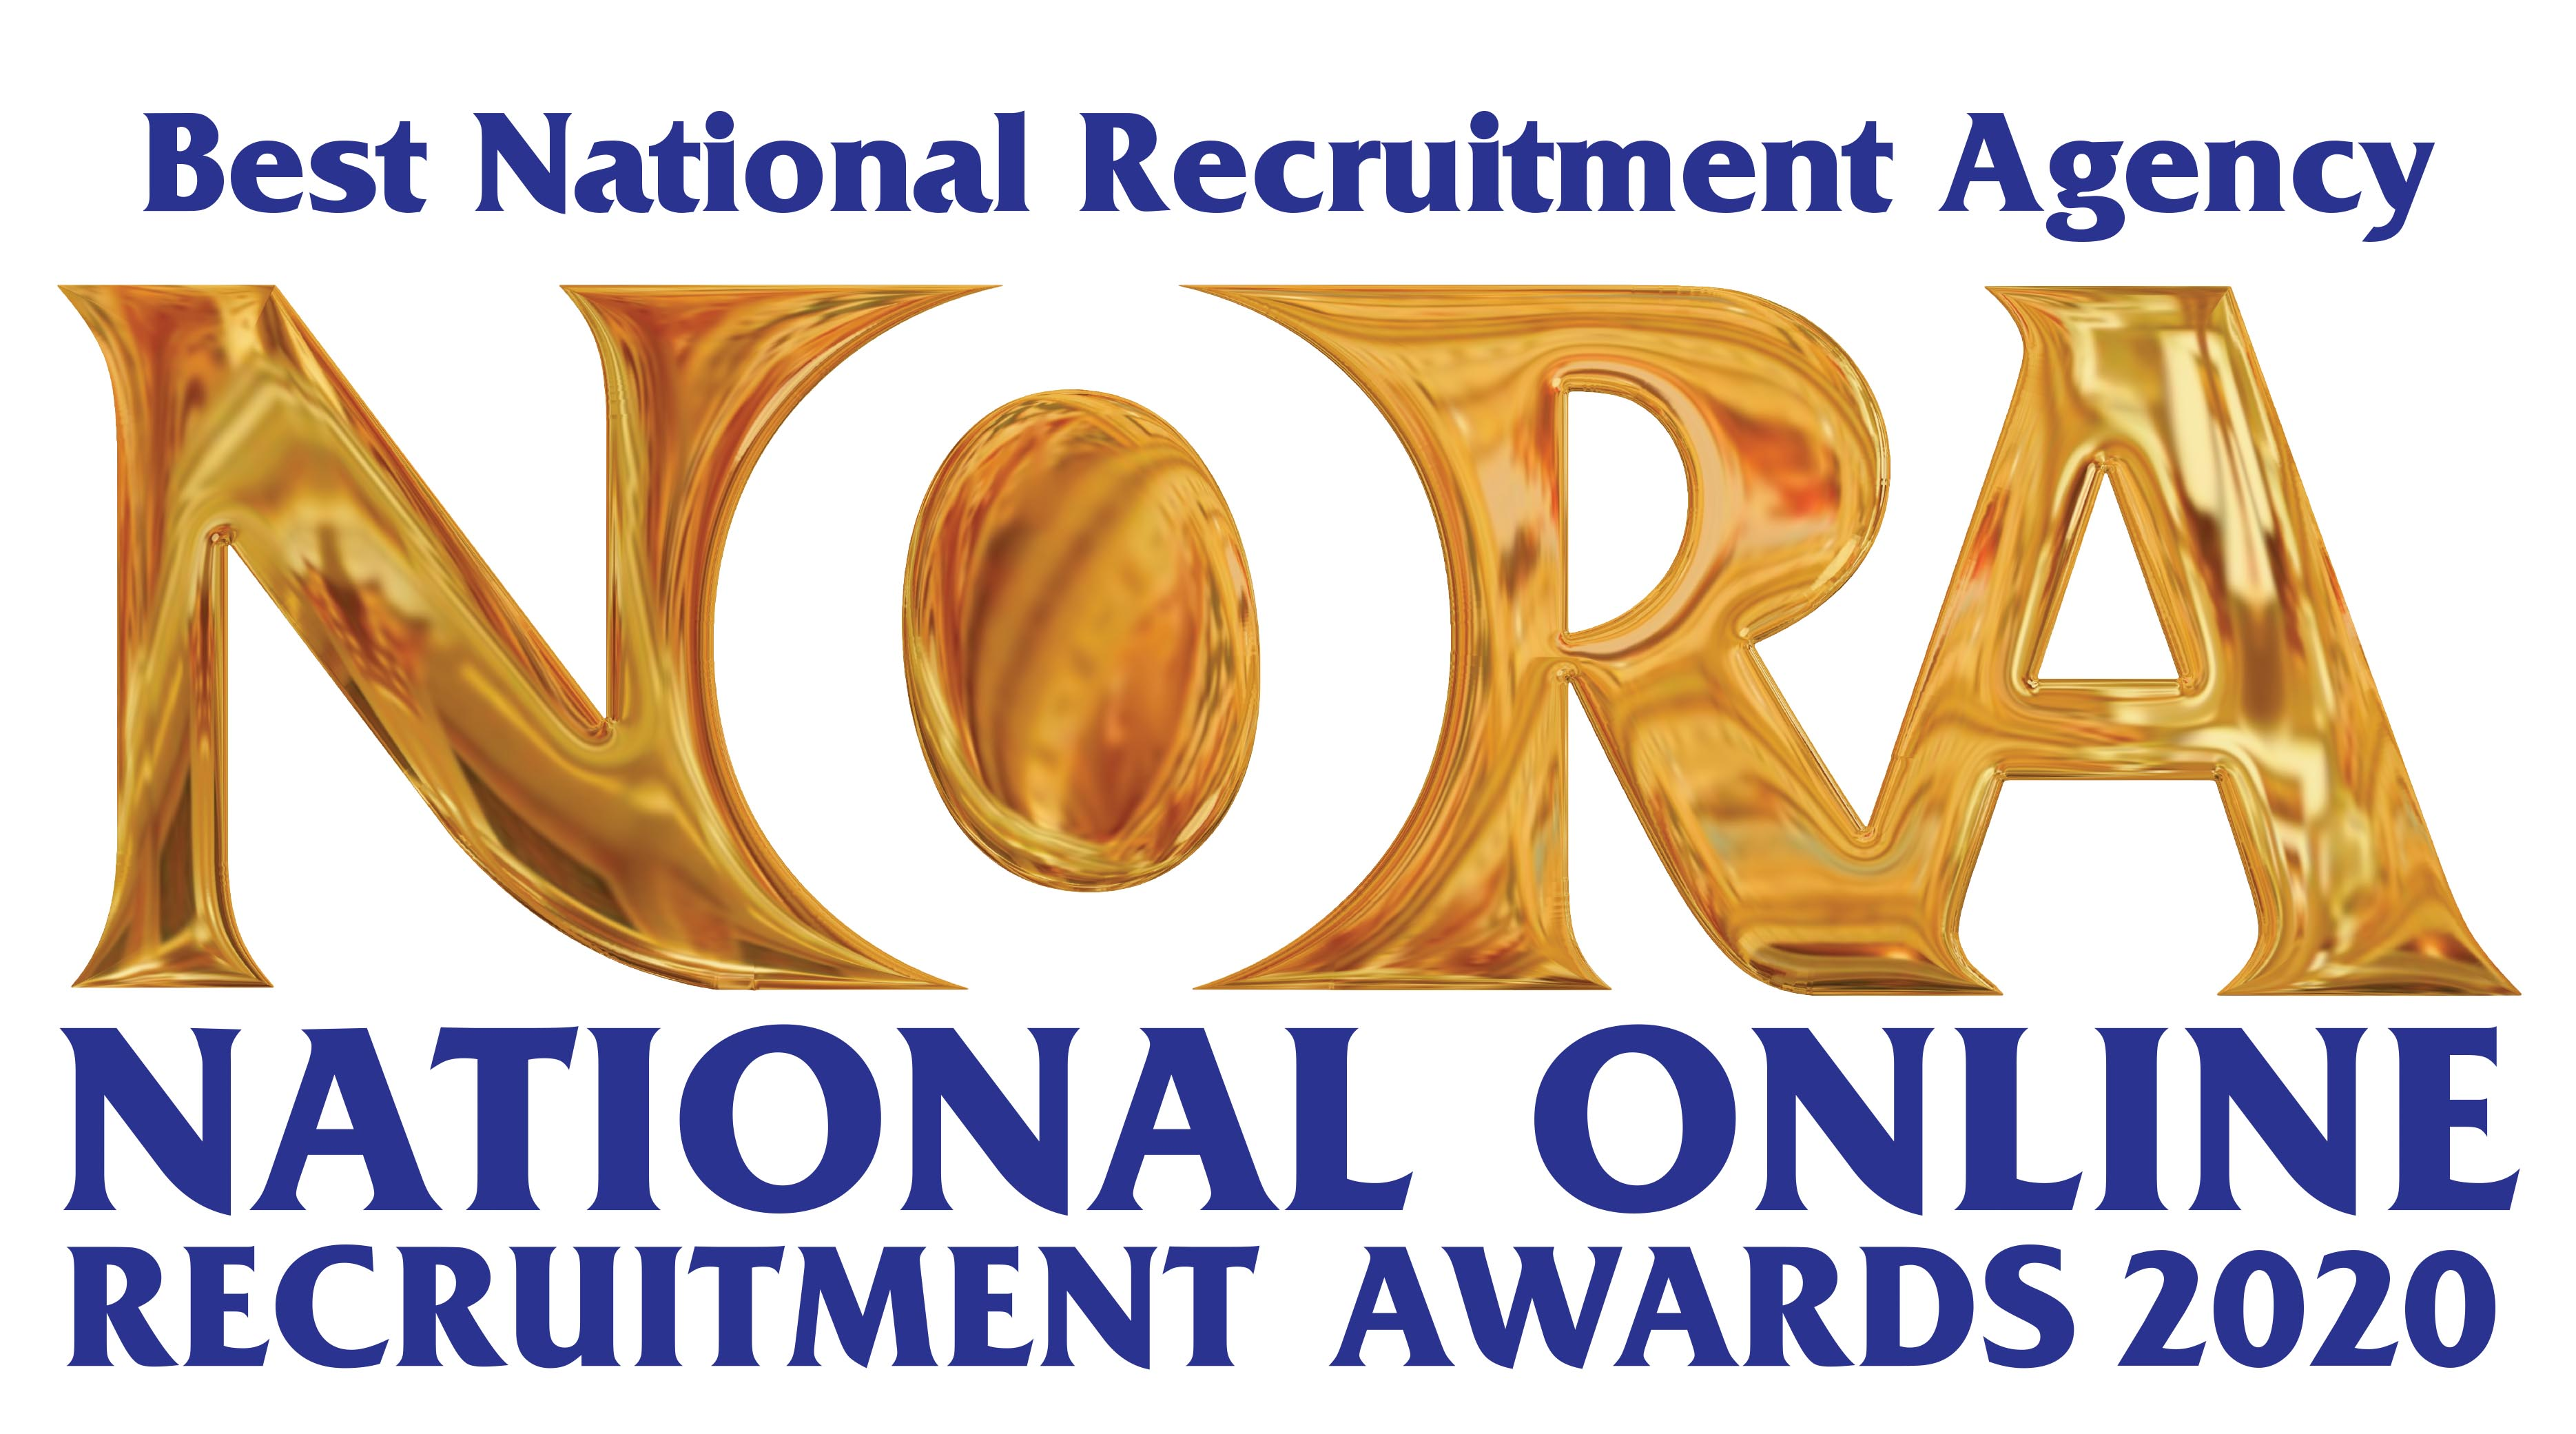 Best National Recruitment Agency 2020